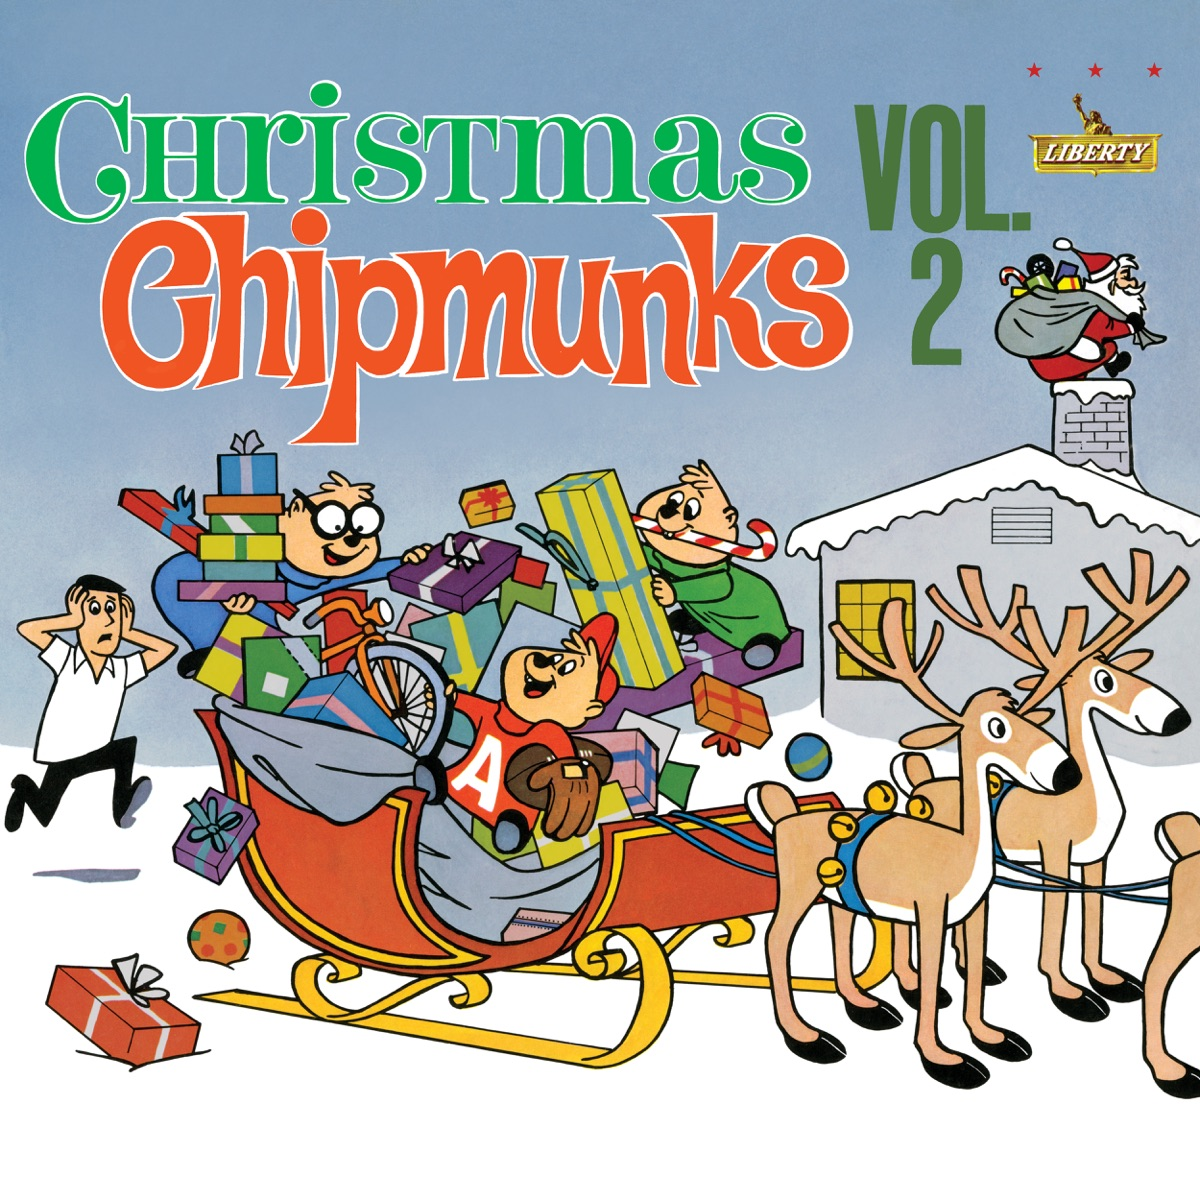 Christmas With The Chipmunks, Vol. 2 Album Cover by The Chipmunks ...